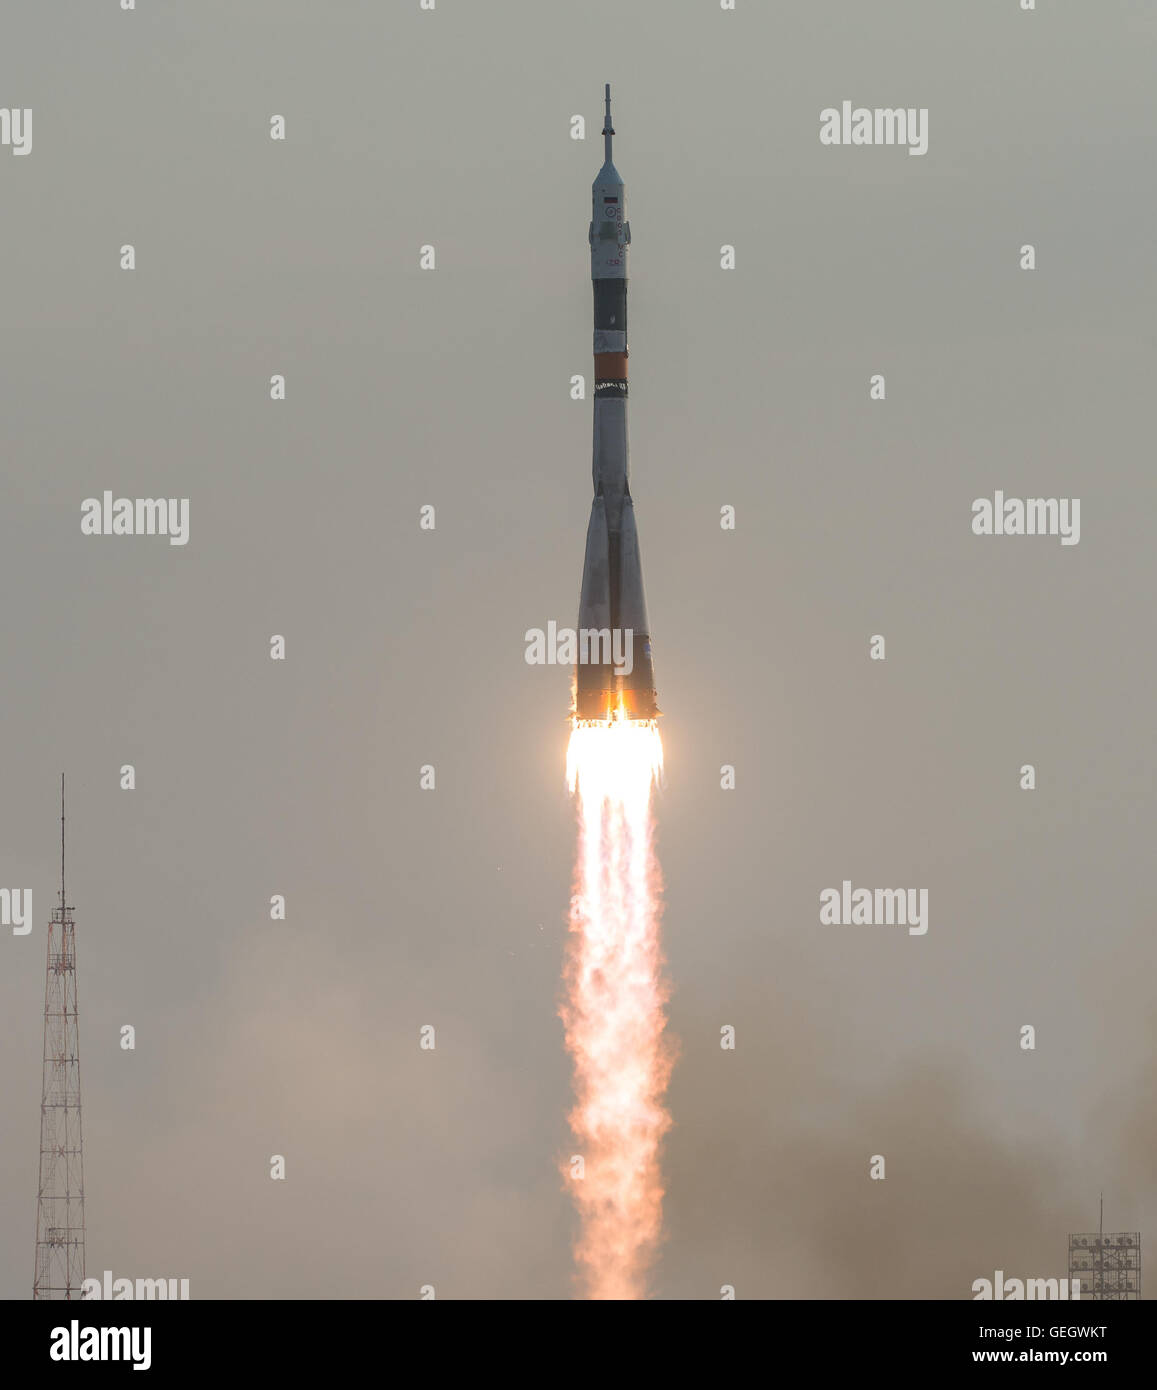 Expedition 48 Launch  07070043 - Stock Image